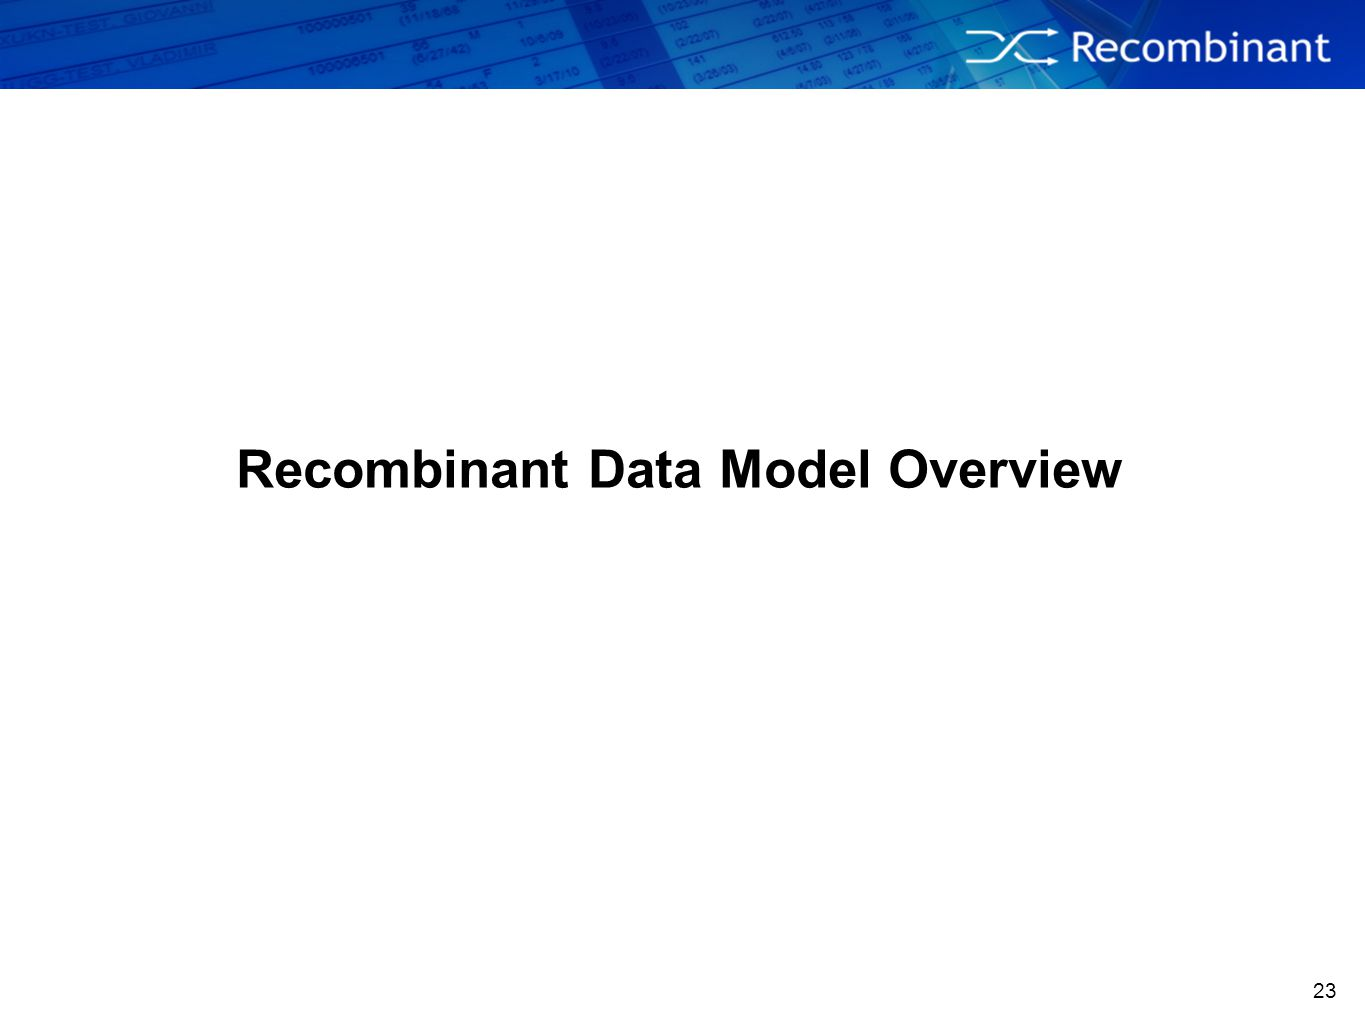 Recombinant Data Model Overview